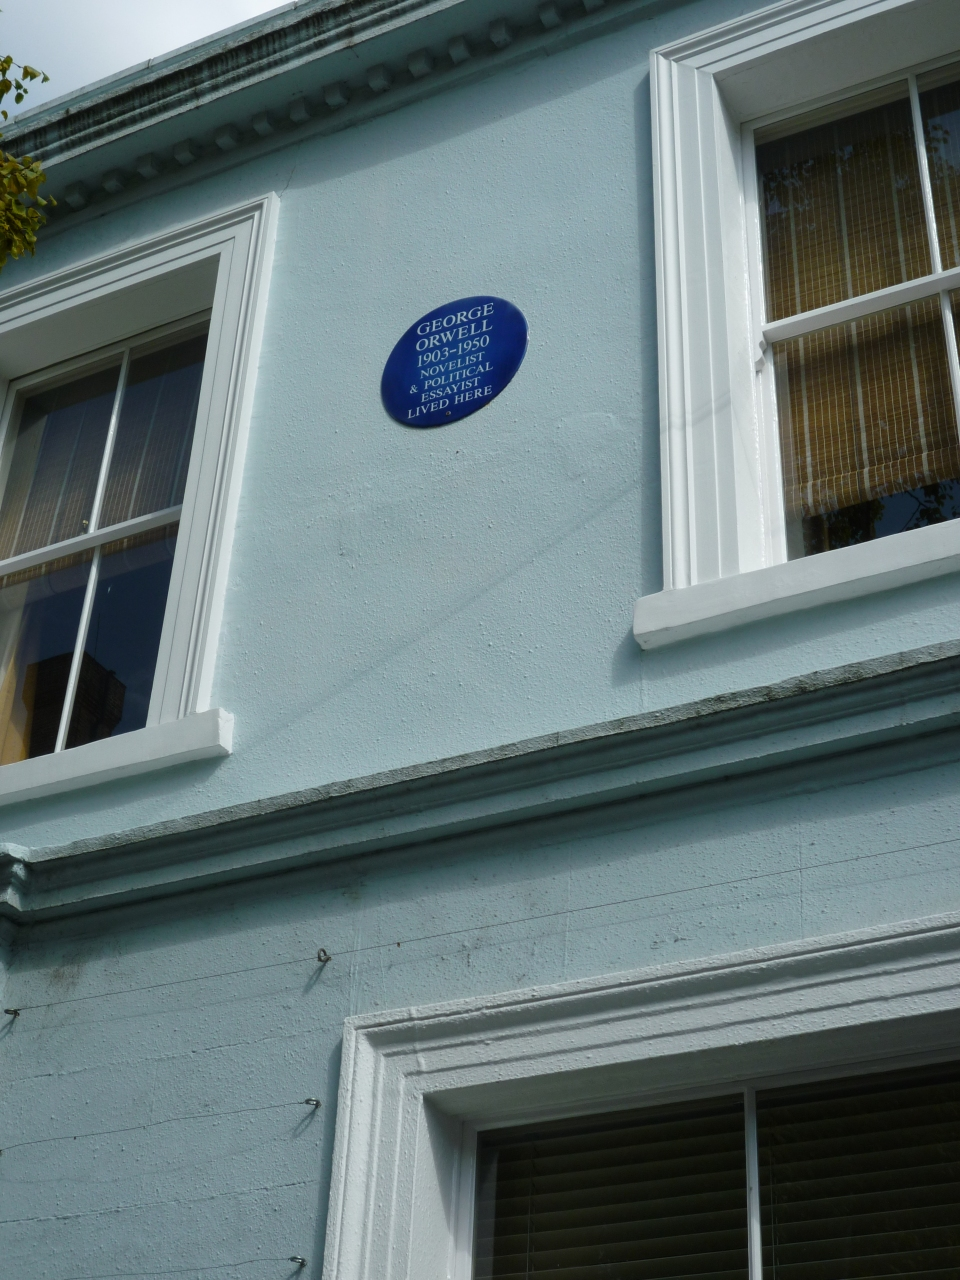 I don't know if you can read the blue plaque but George Orwell lived there